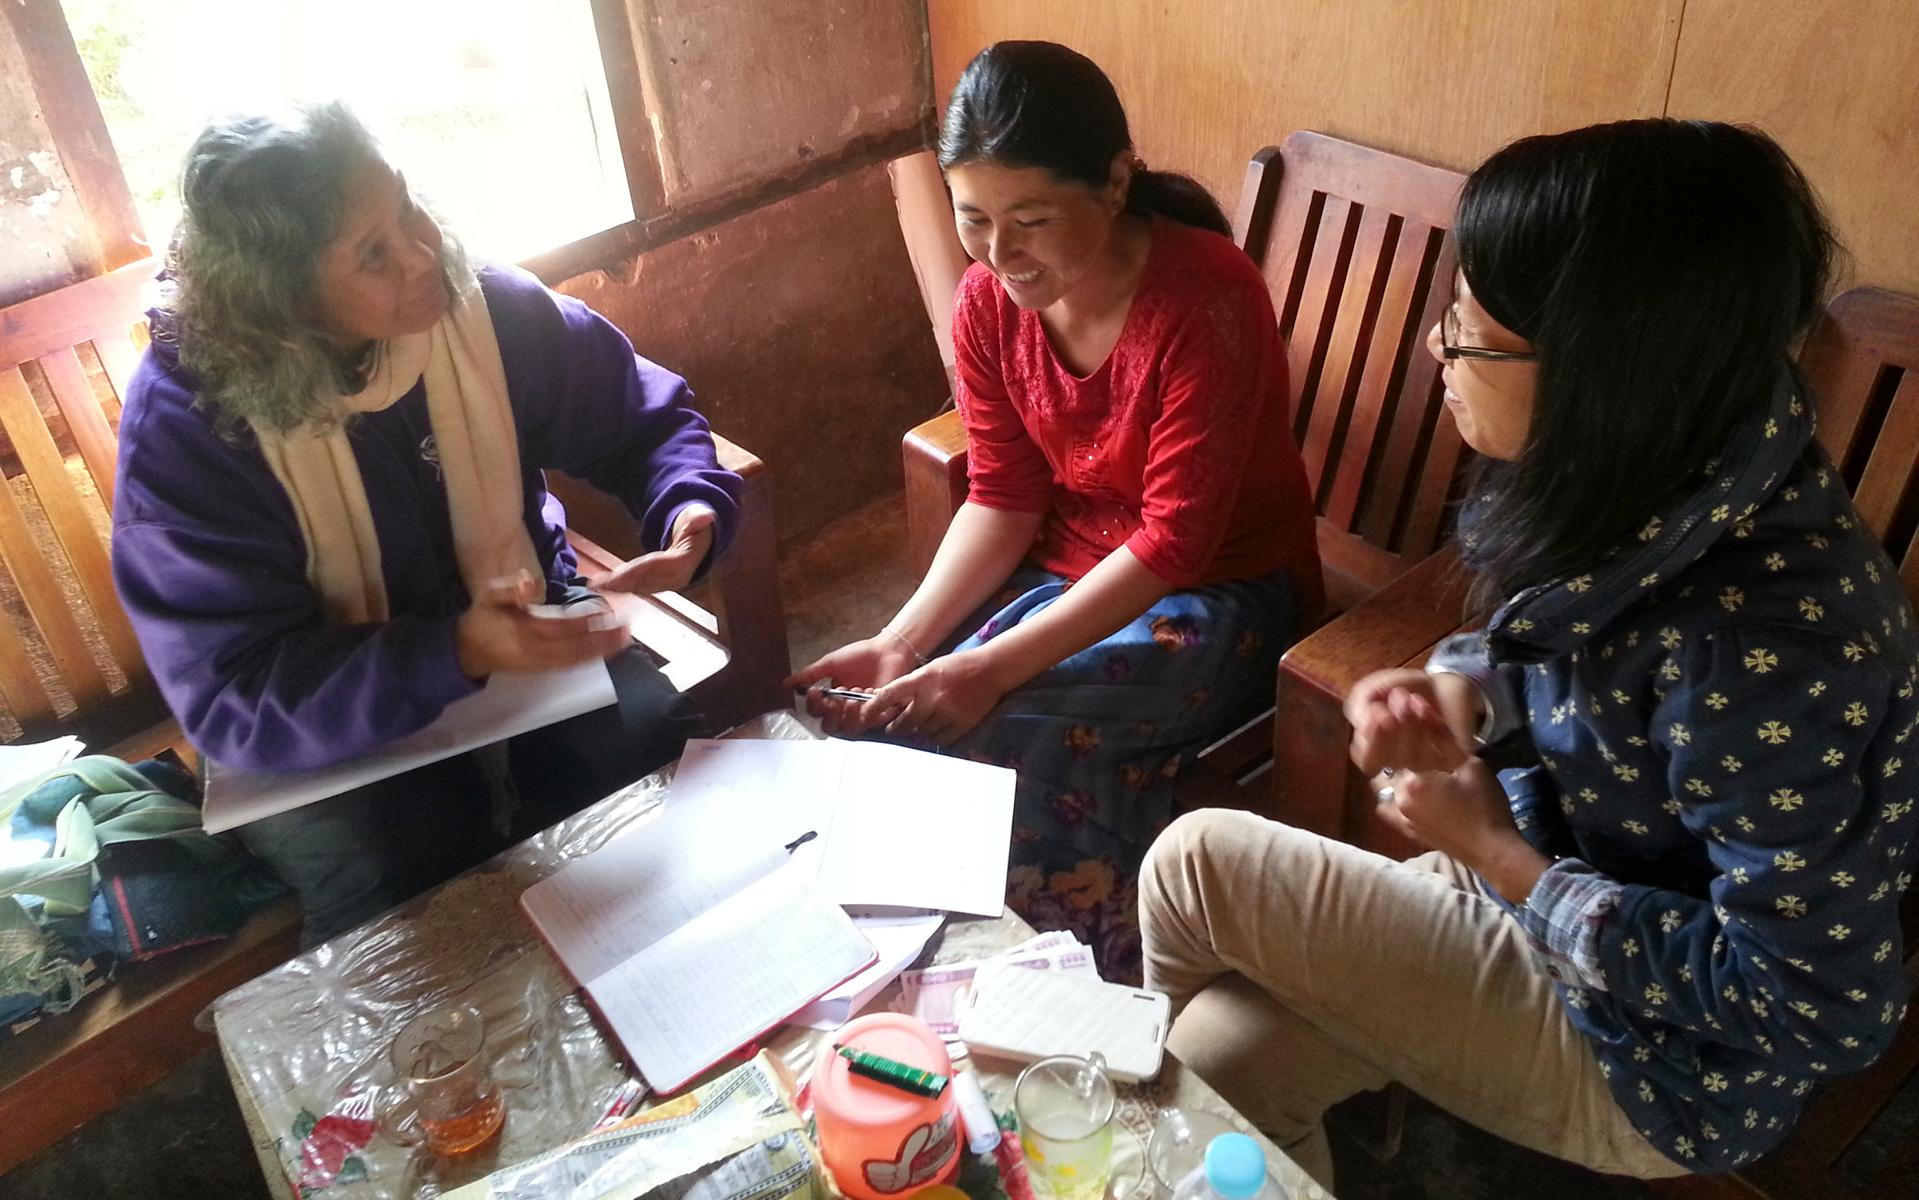 Training villagers in accounting and group management Hta Nee La Leh village Kayah State ITC